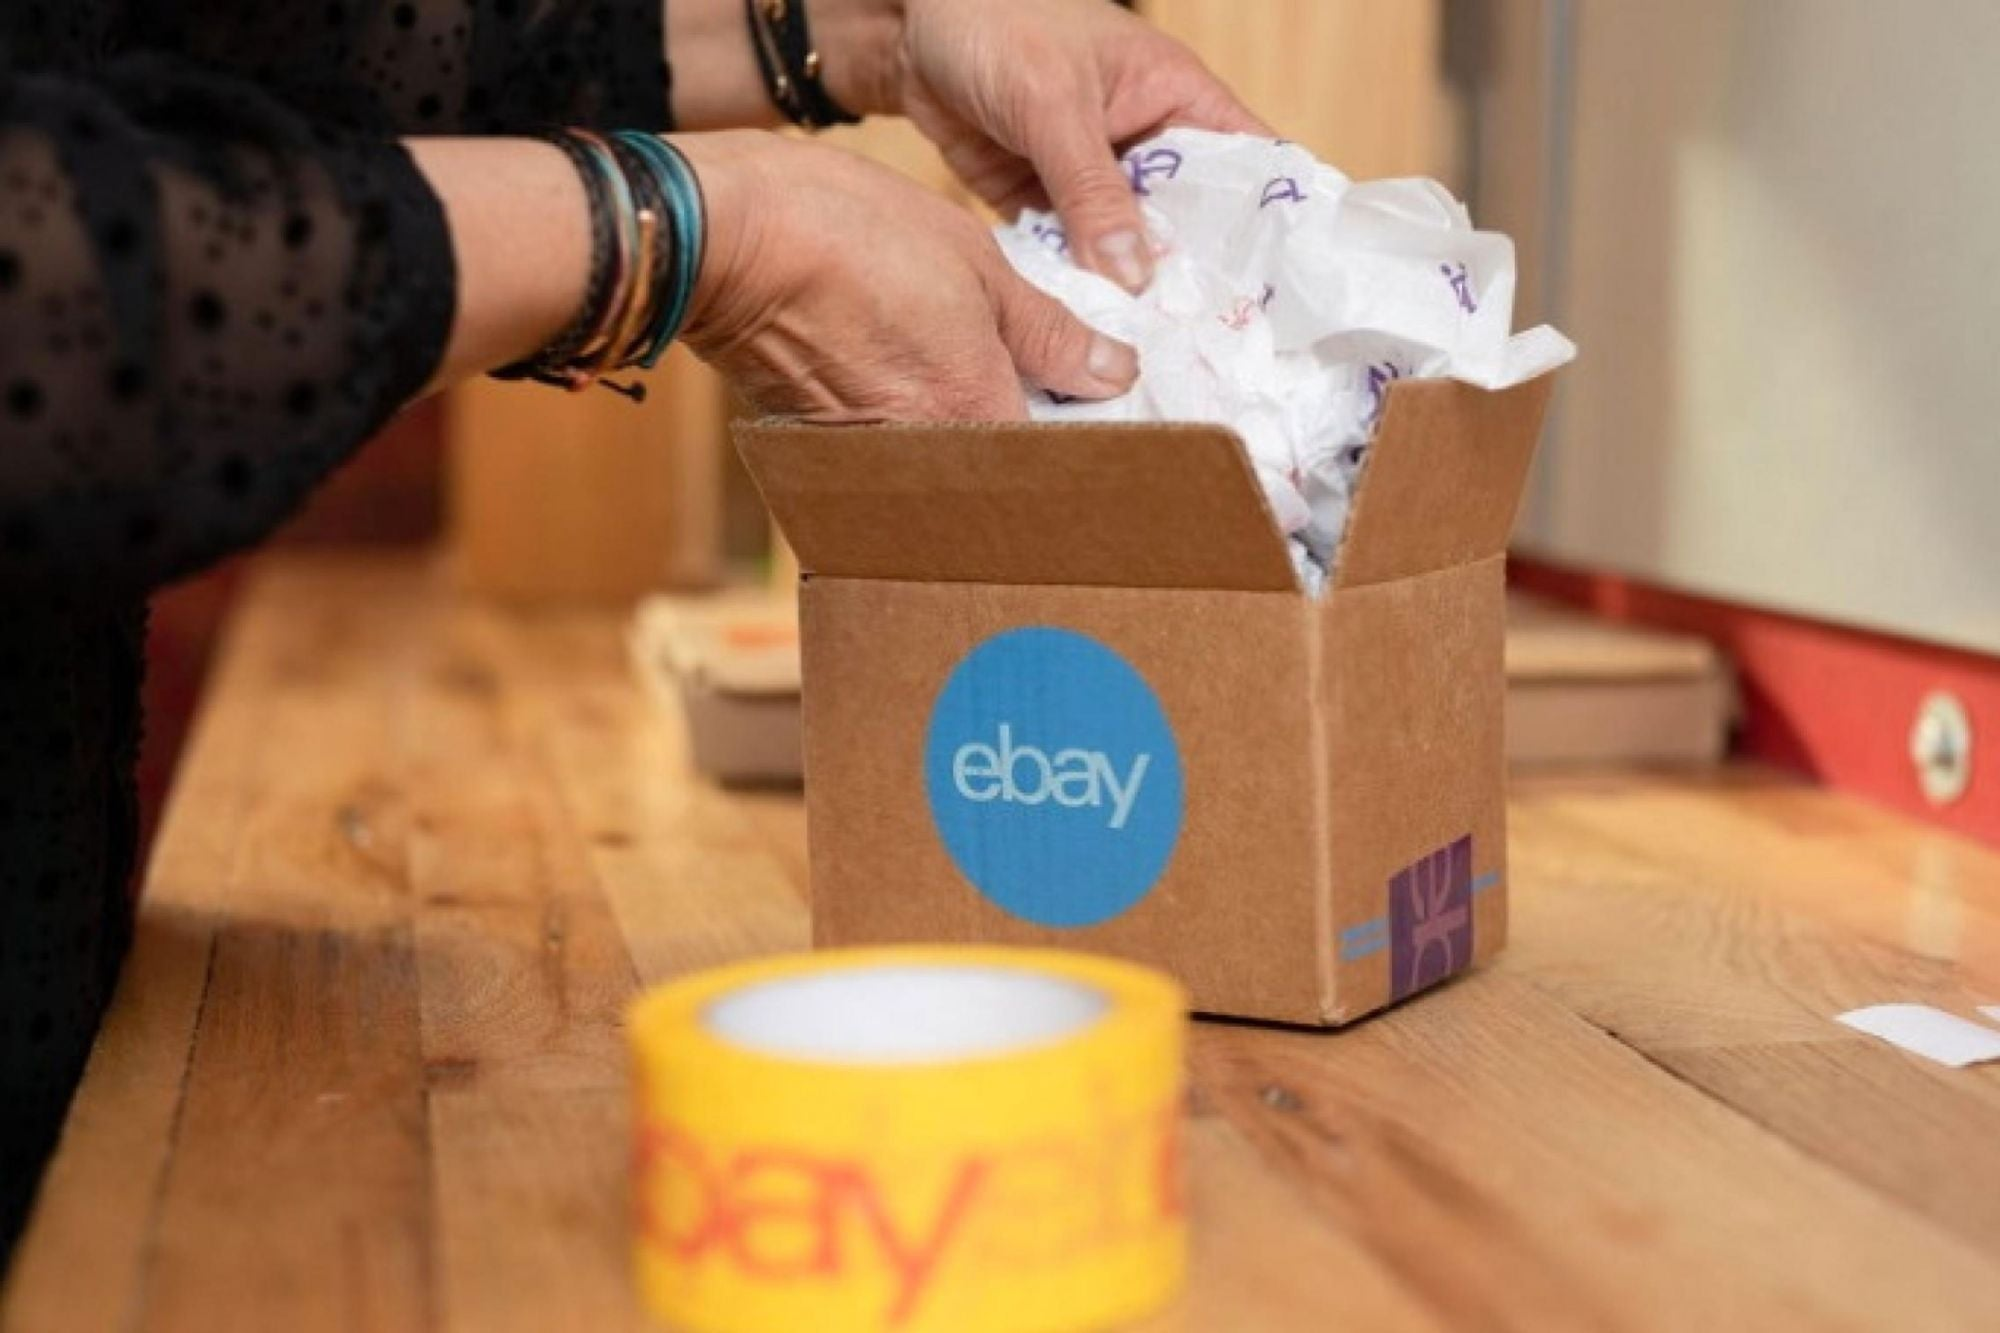 New Bill Would Make Amazon, eBay Liable for Counterfeits